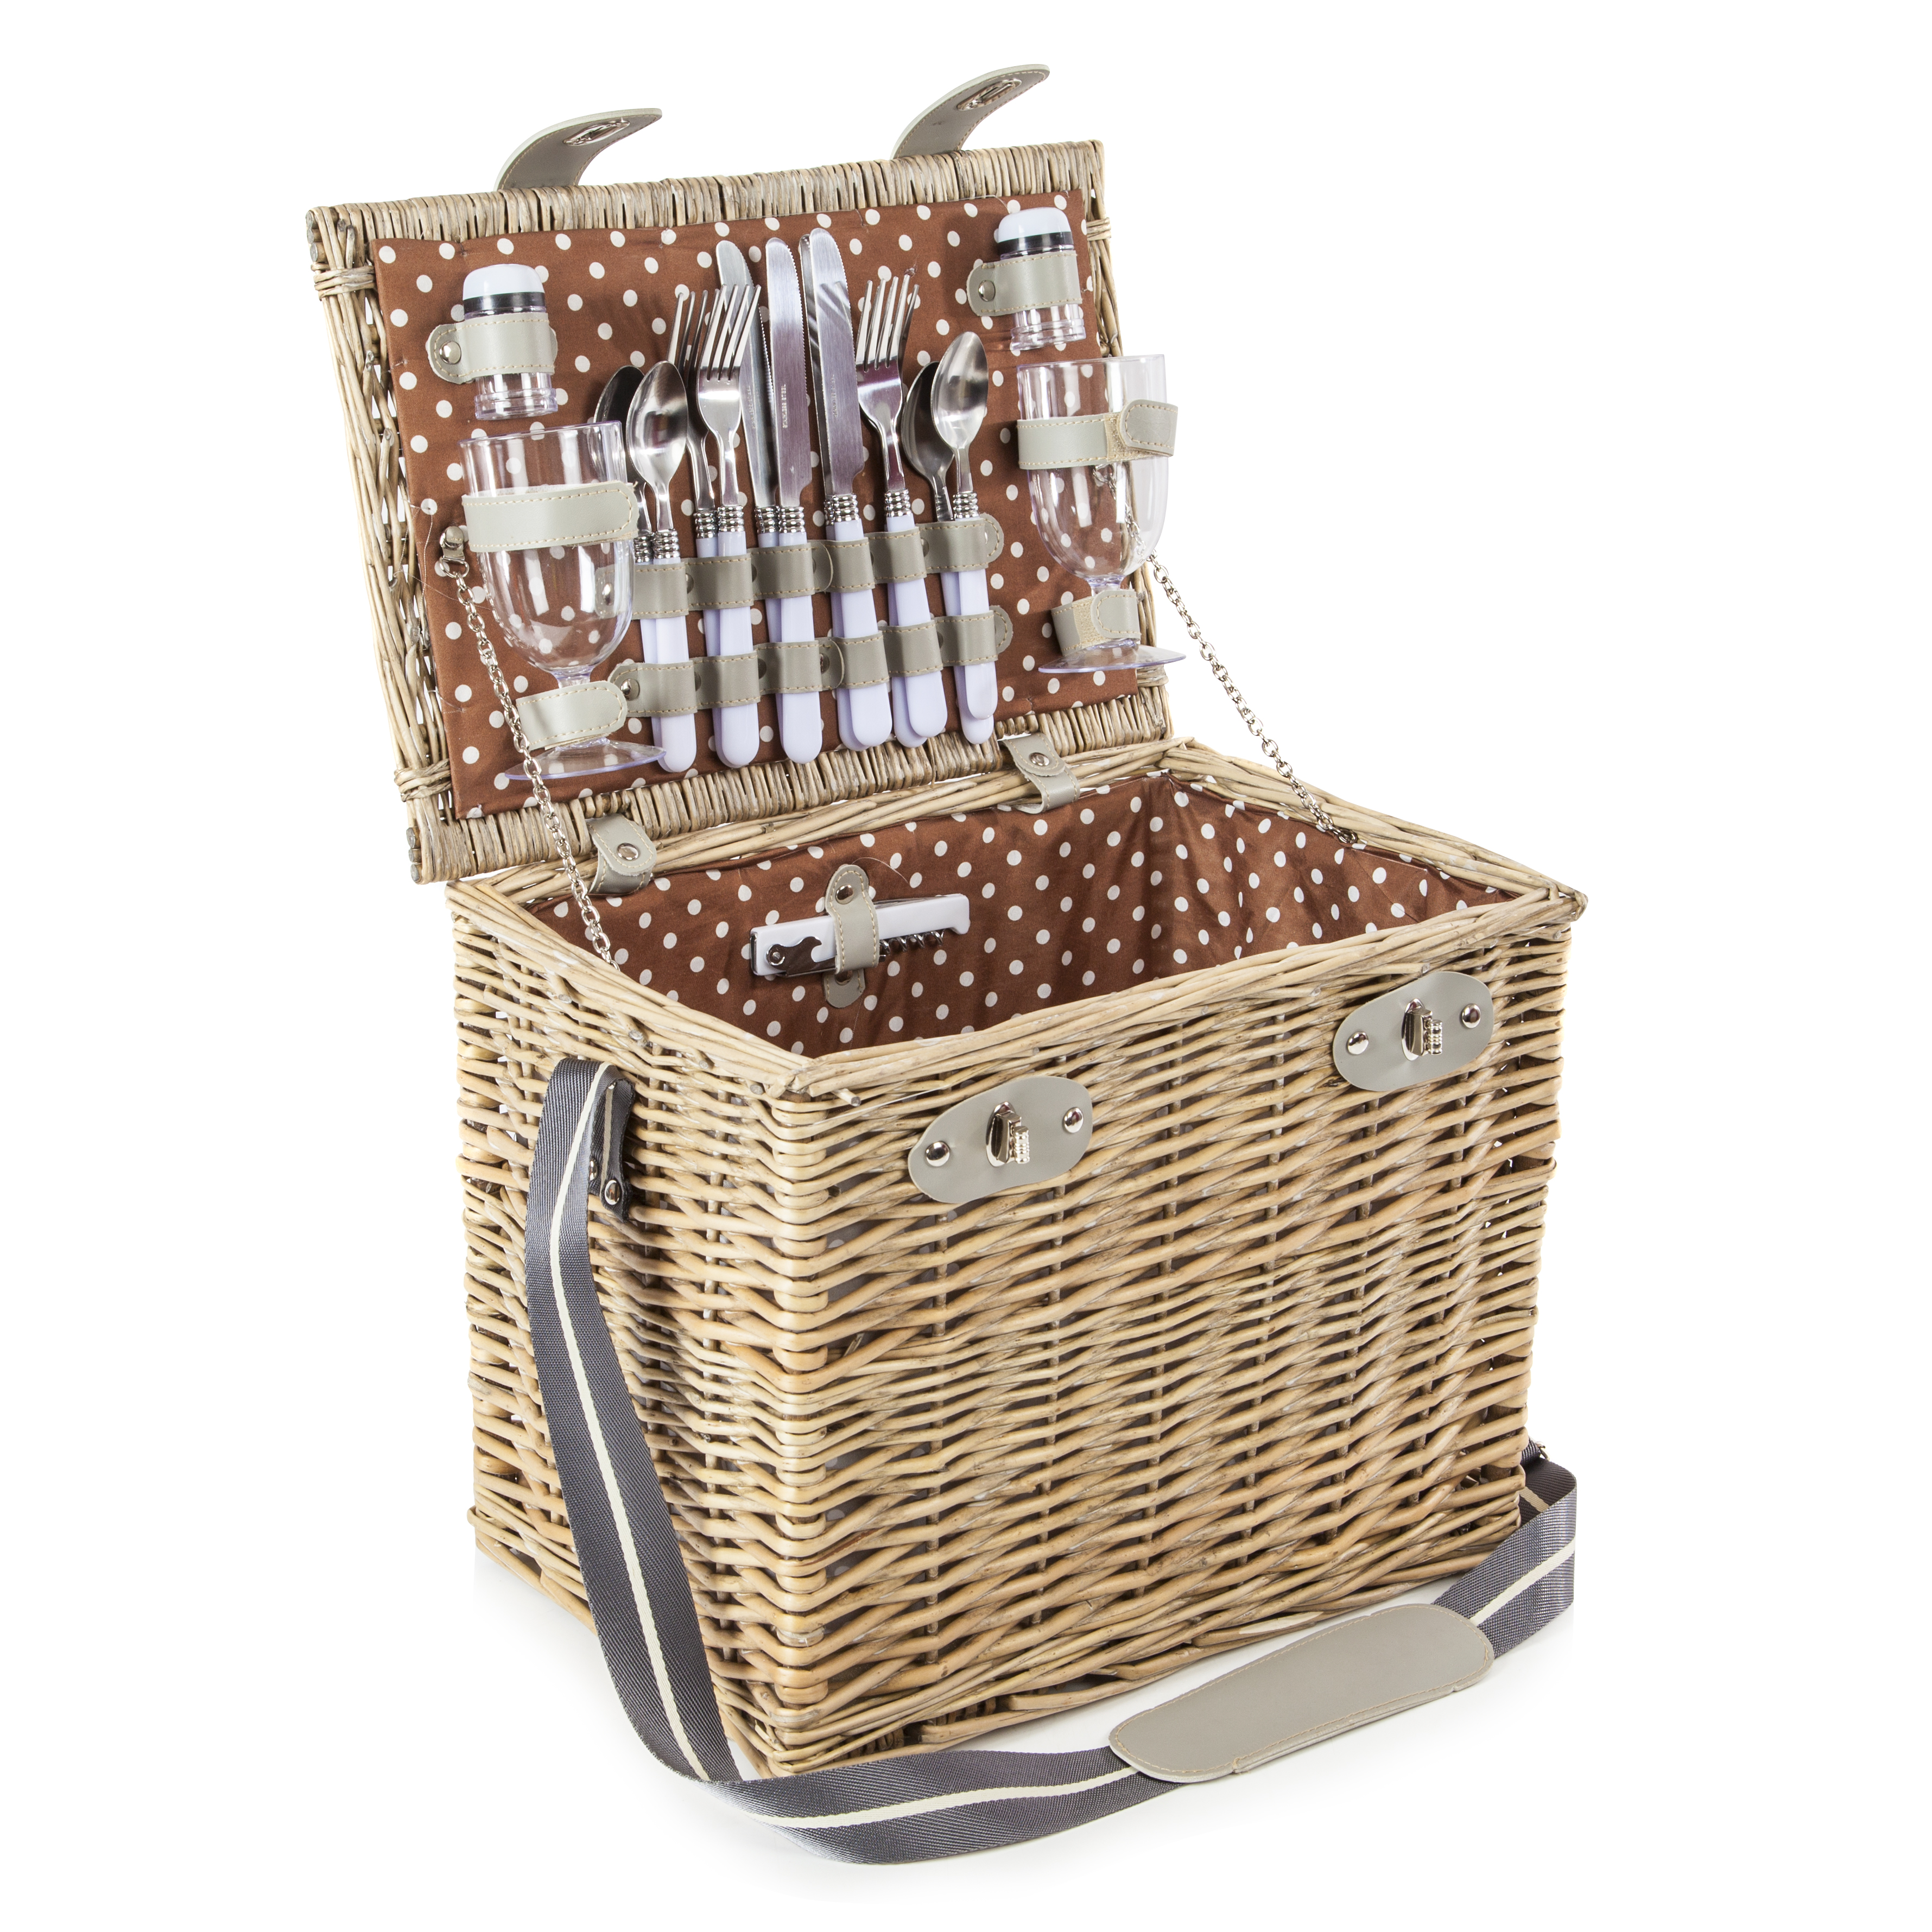 The latest Tweets from Country Baskets (@countrybaskets). Stunning wedding products, artificial flowers & greenery, floral supplies, home & garden, Christmas .